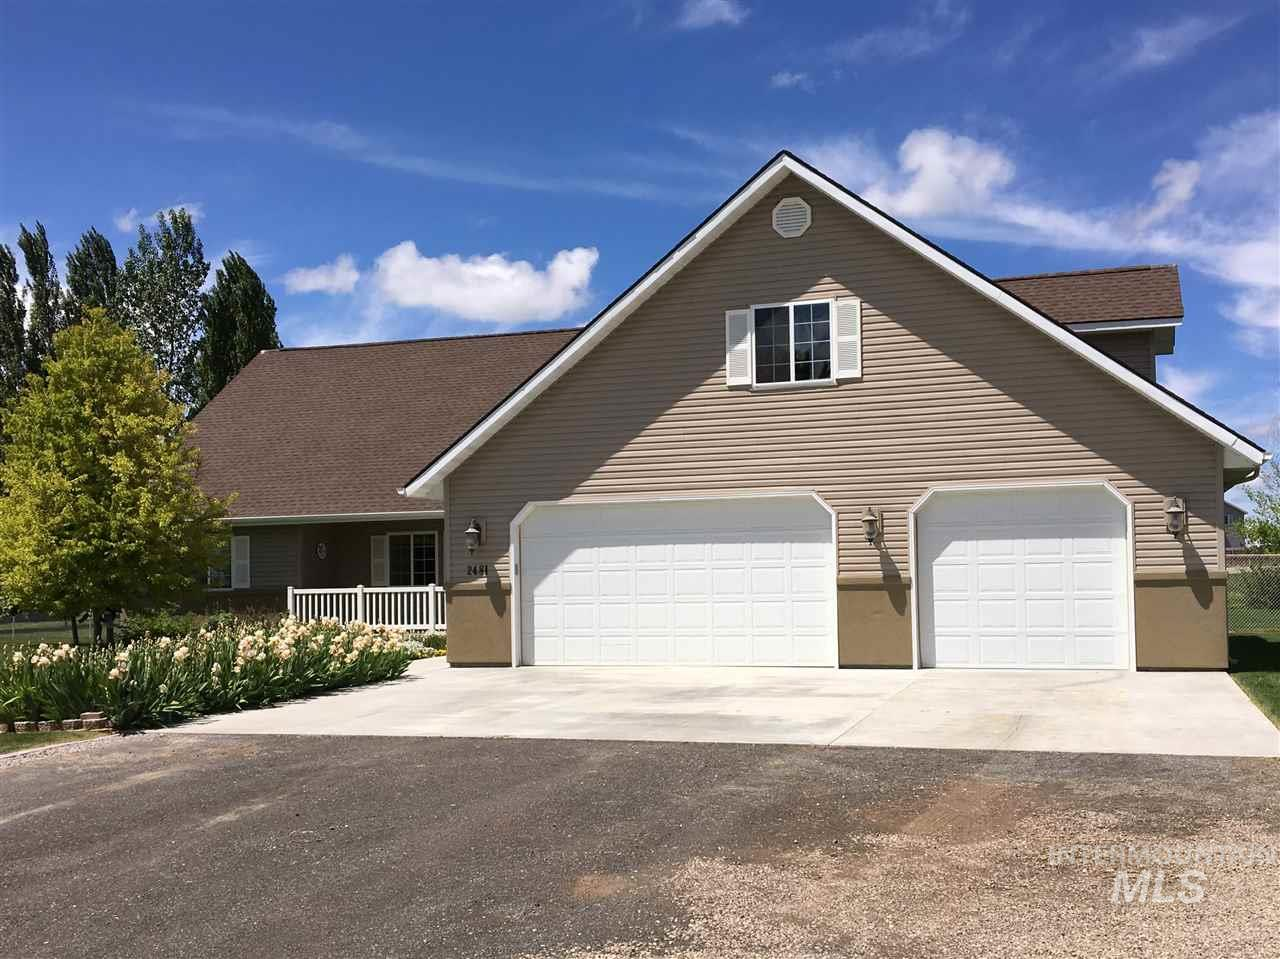 3805 N 2481 E- Filer- Idaho 83328, 4 Bedrooms, 3 Bathrooms, Residential For Sale, Price $425,000, 98718970